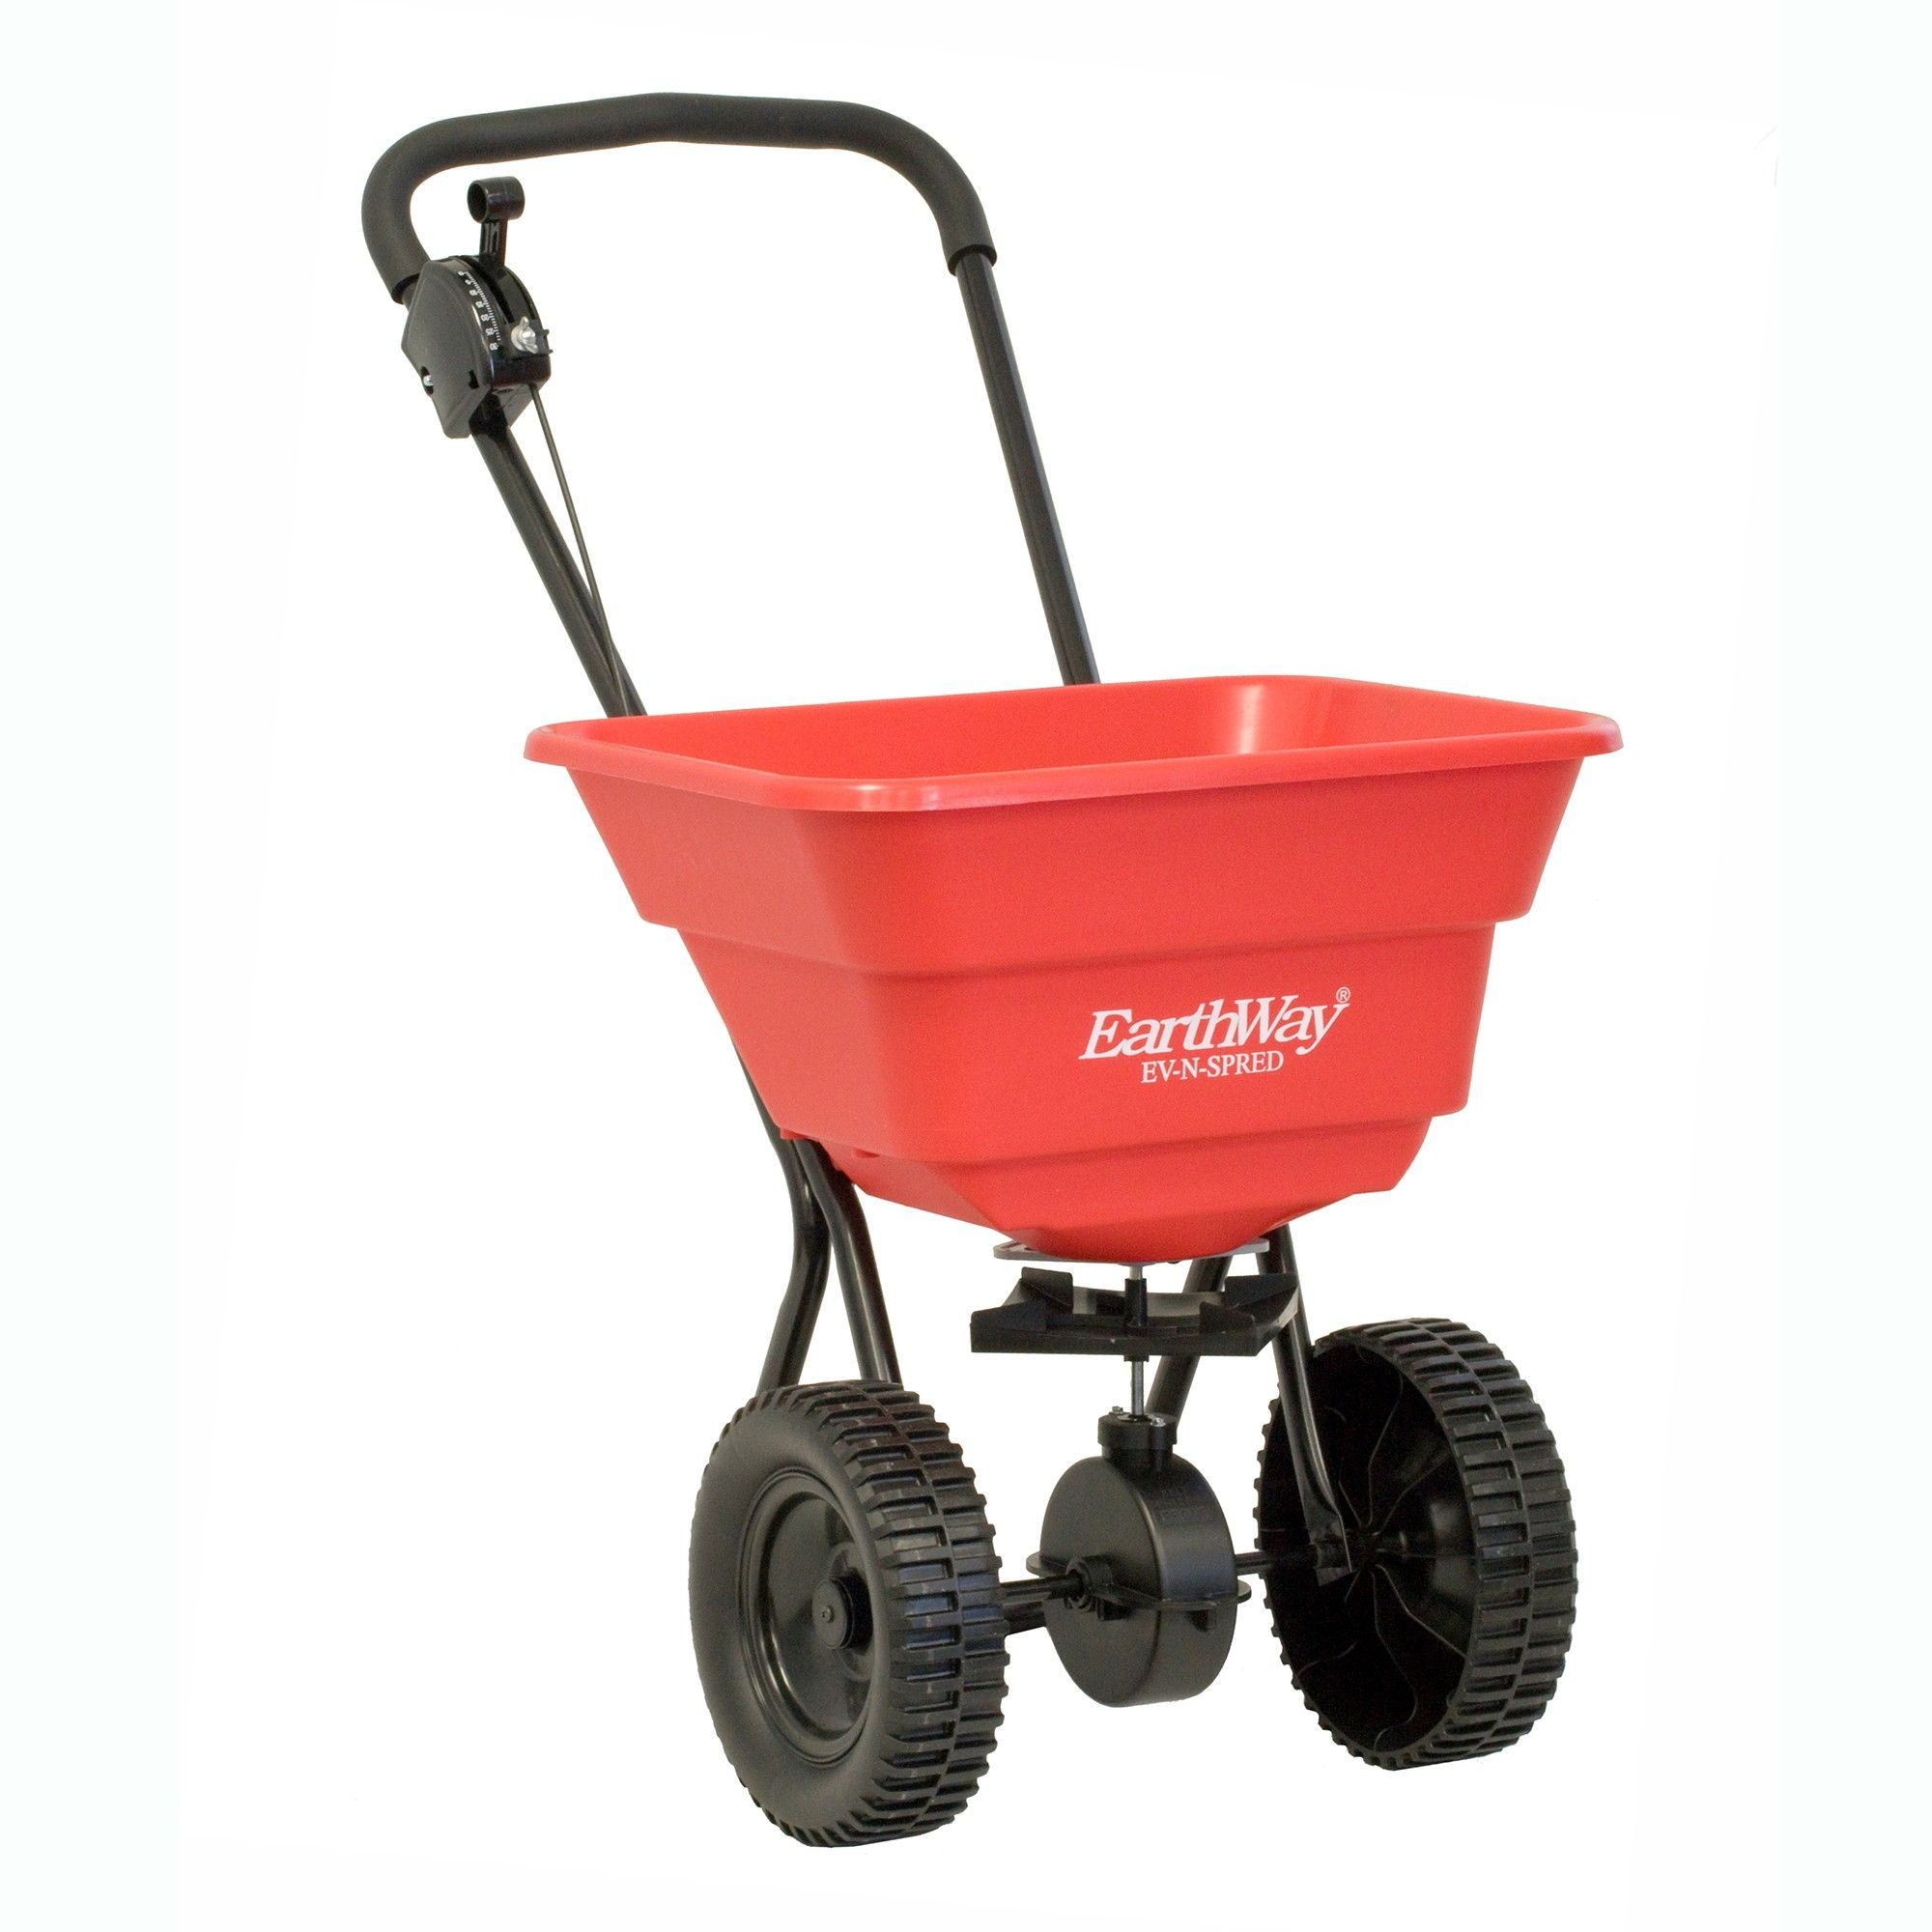 Earthway 2050su Plus Deluxe Estate Broadcast Seed And Lawn